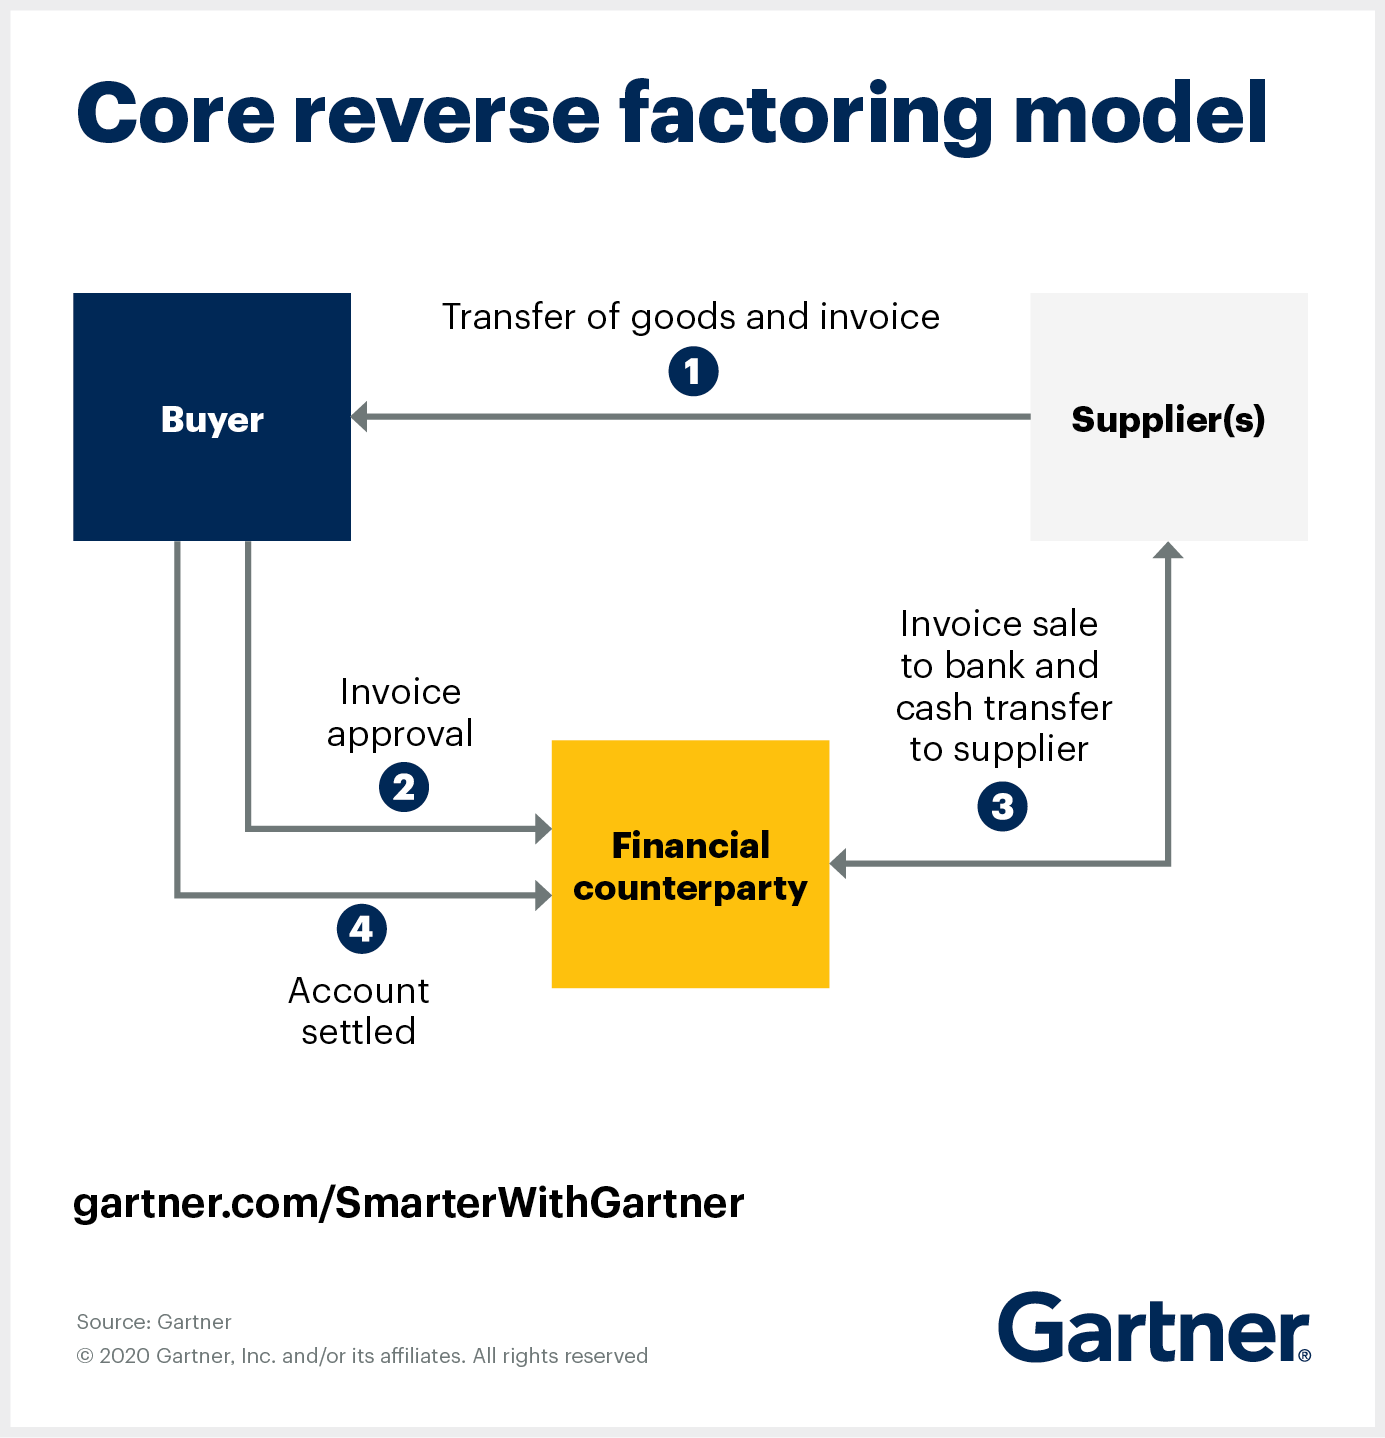 The supply chain finance core reverse factoring model